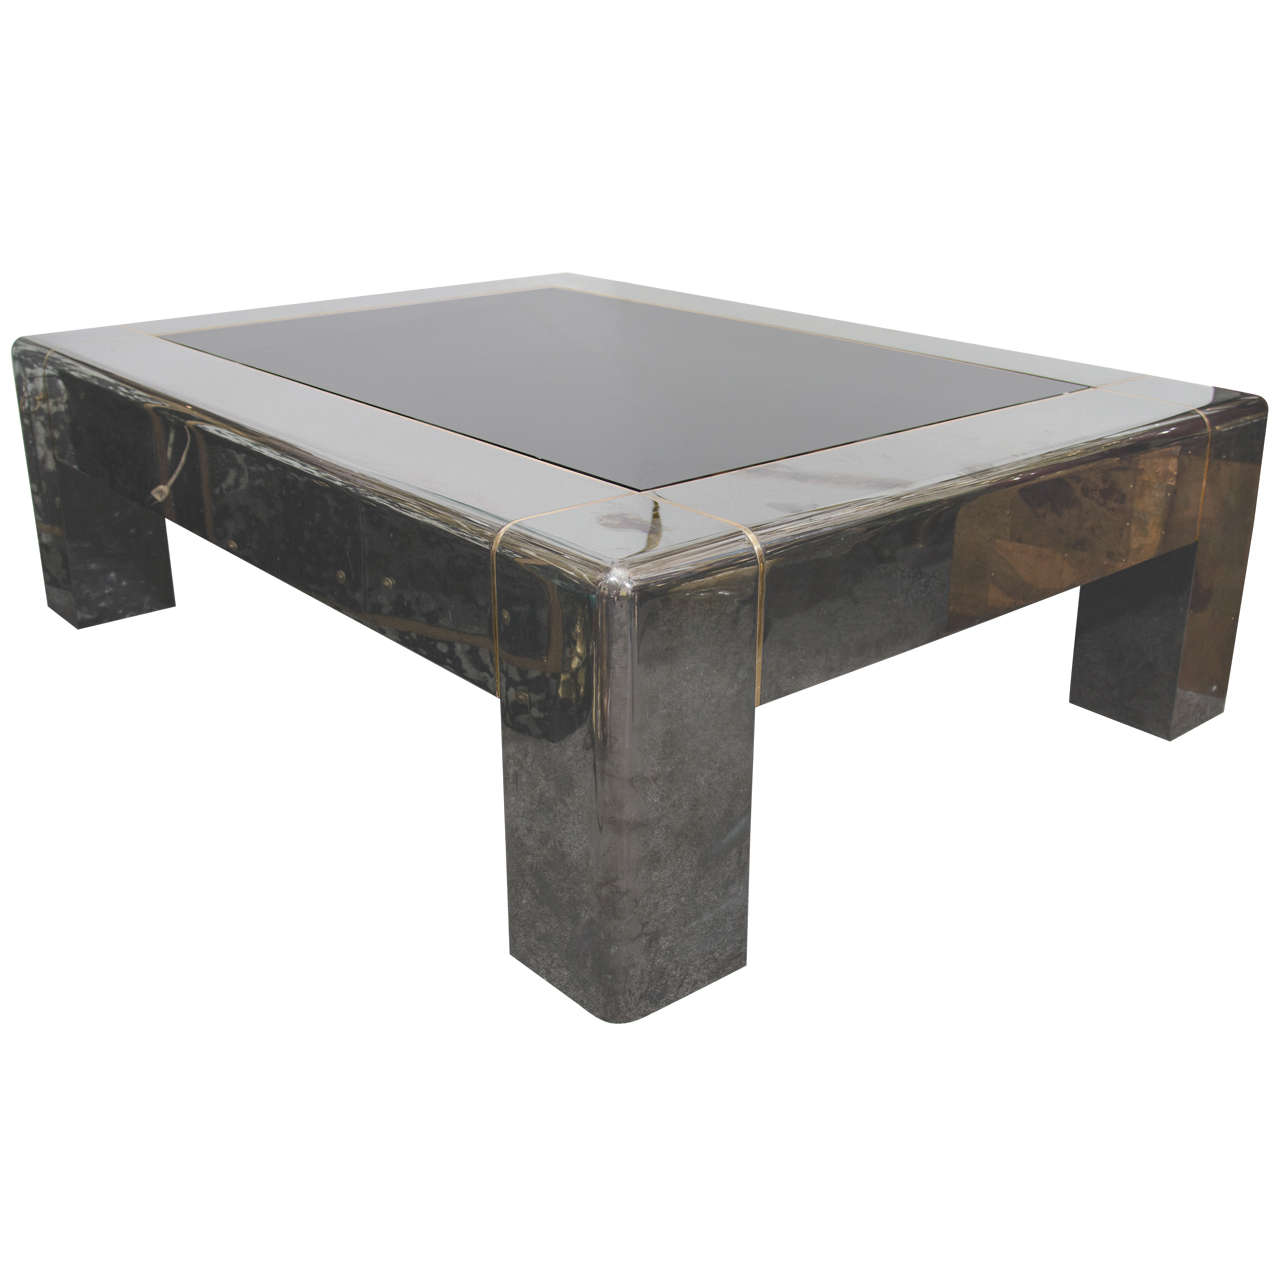 Midcentury Gunmetal And Smoked Glass Karl Springer Coffee Table At 1stdibs